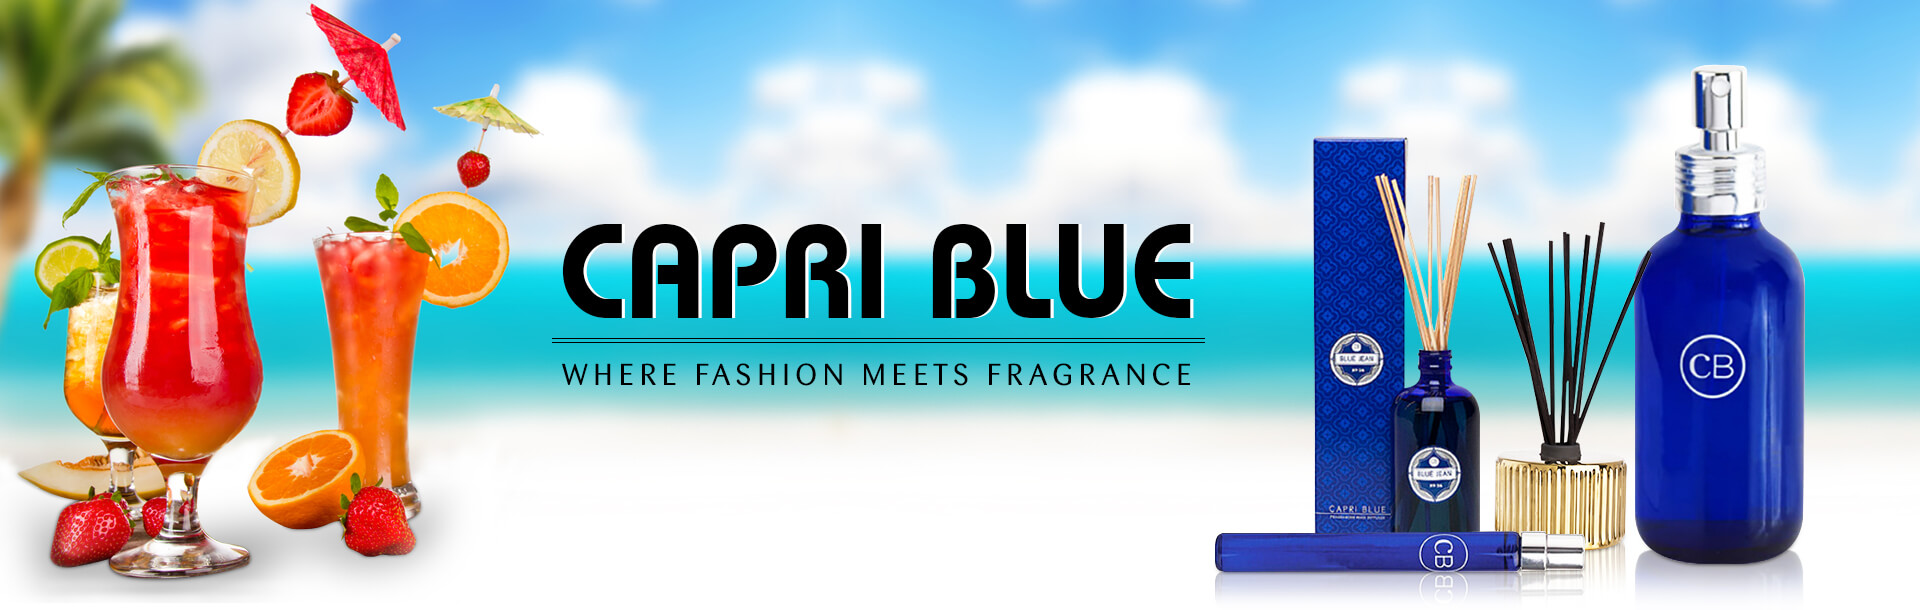 Capri Blue Collection